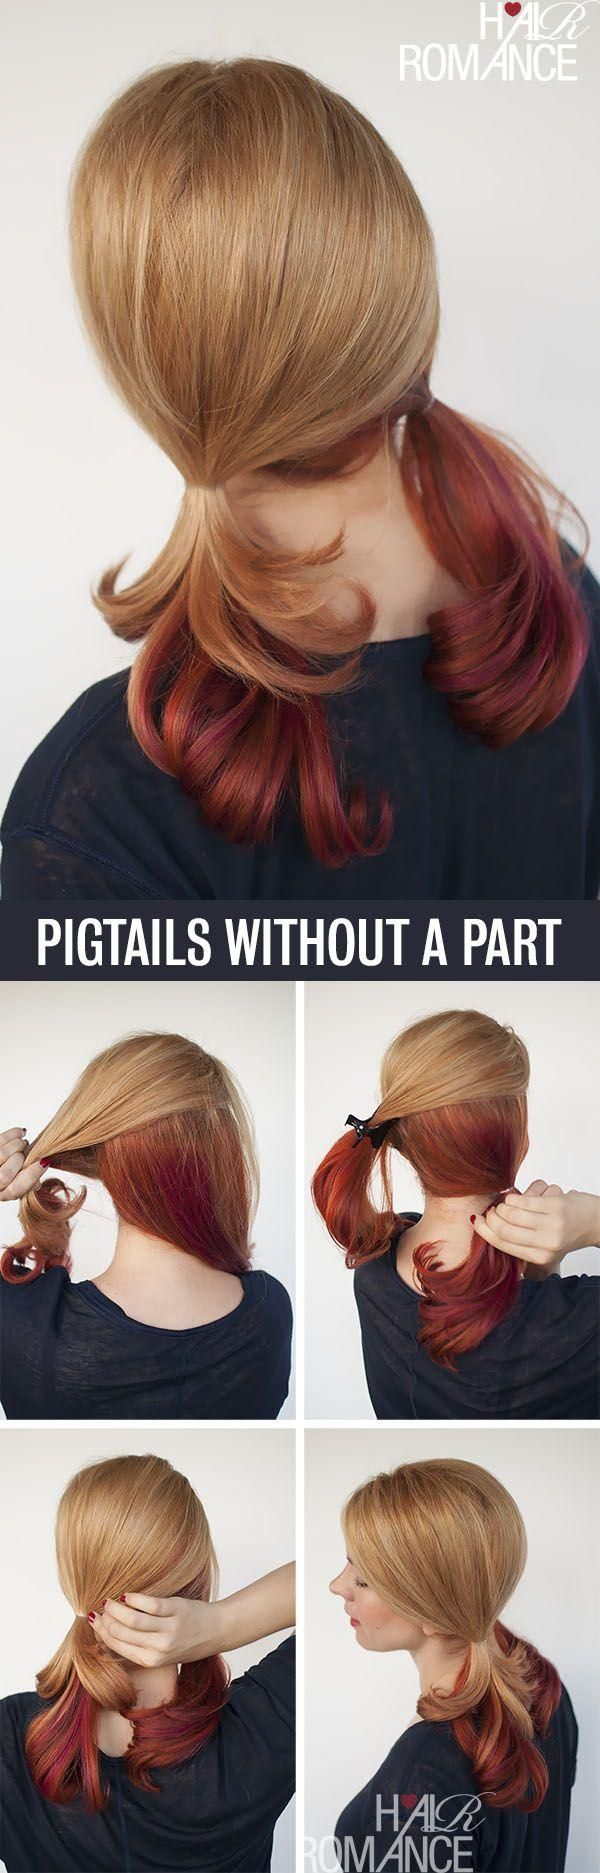 nice 5 Easy Hairstyles for Girls to Wear to School